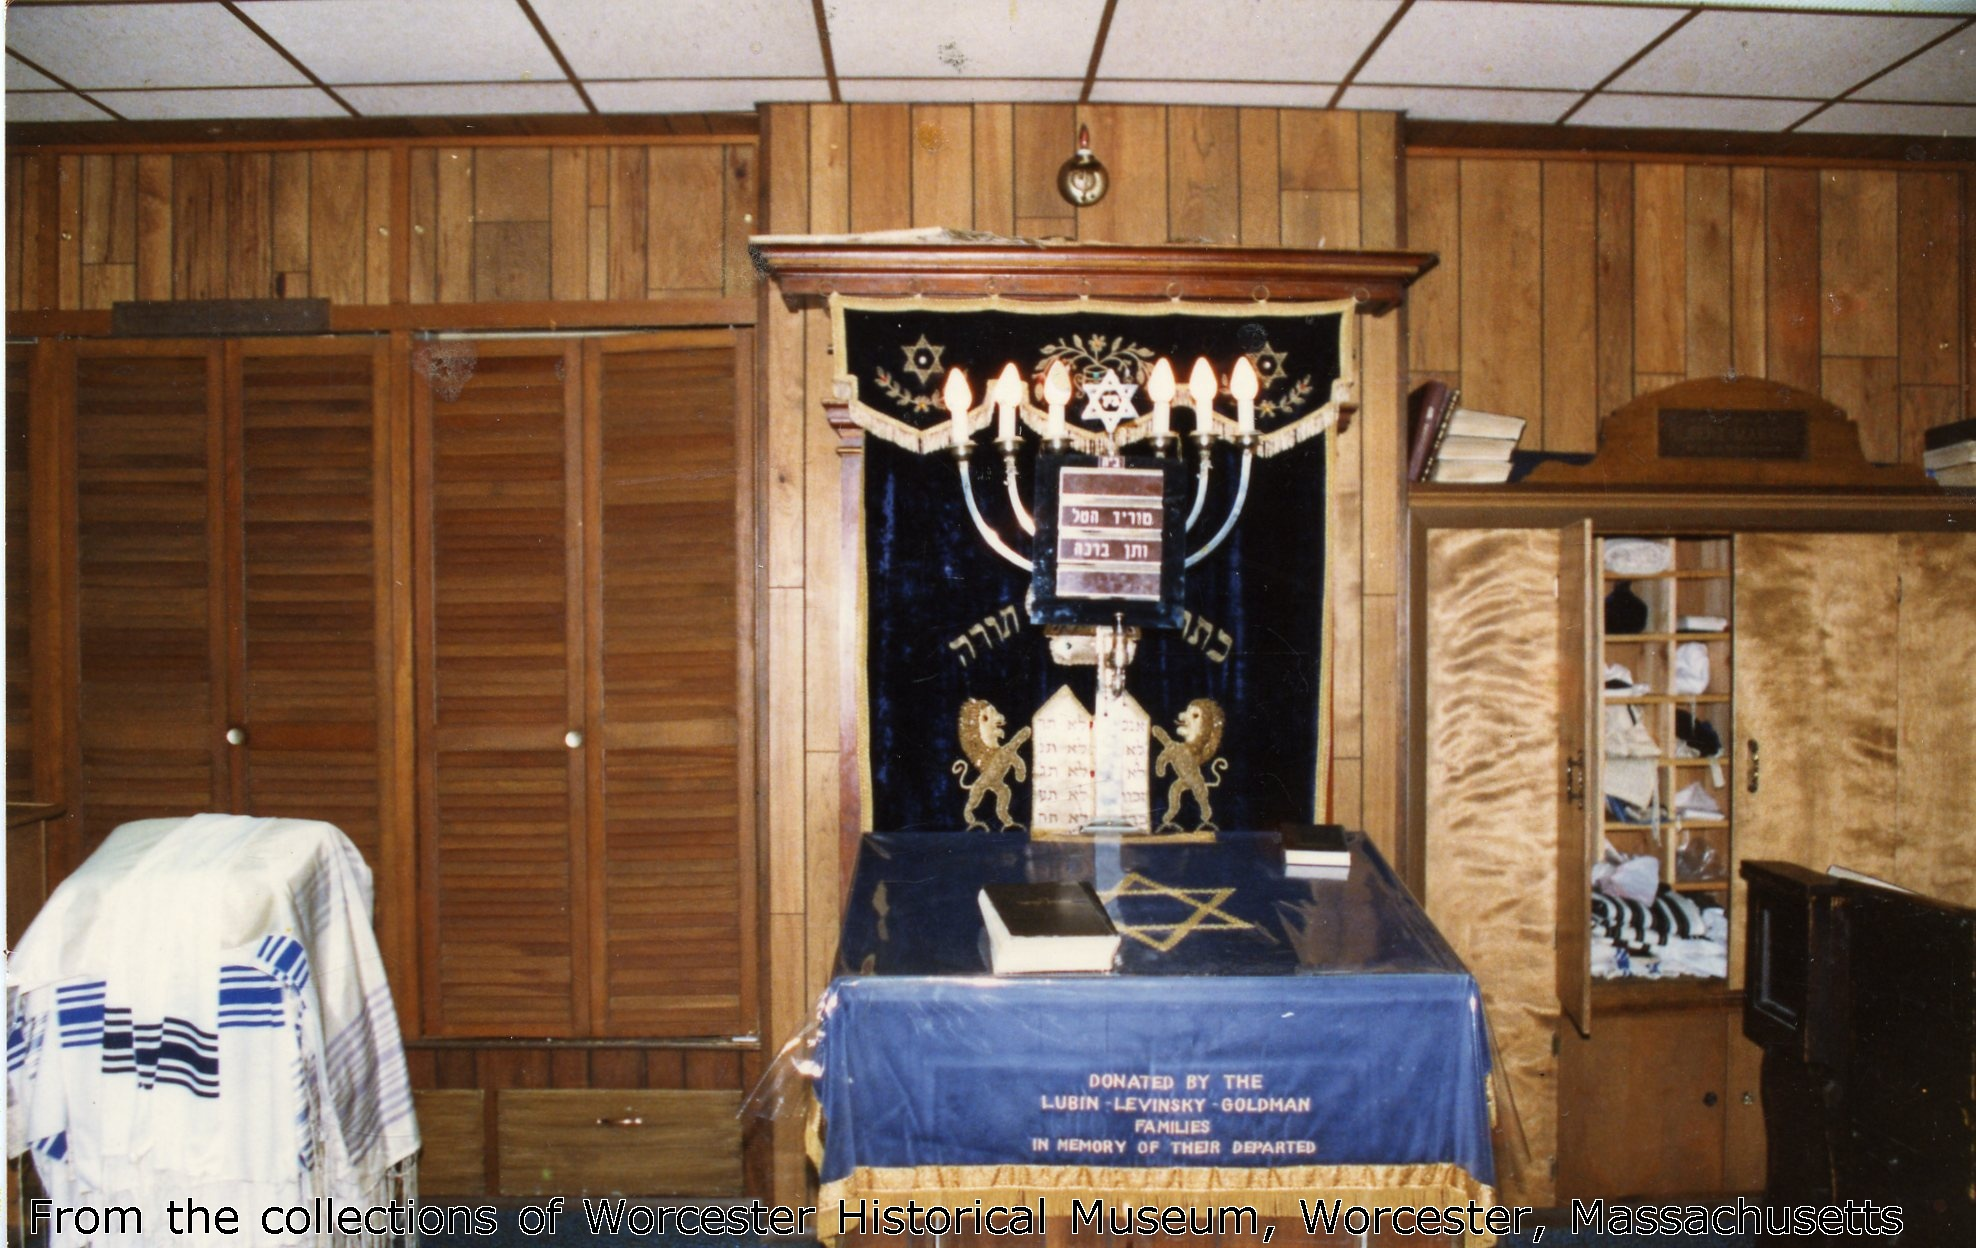 The last minyan no longer prayed in the opulent sanctuary upstairs. They met in this cozy room downstairs converted into a small prayer space. Photo courtesy of Worcester Historical Musuem